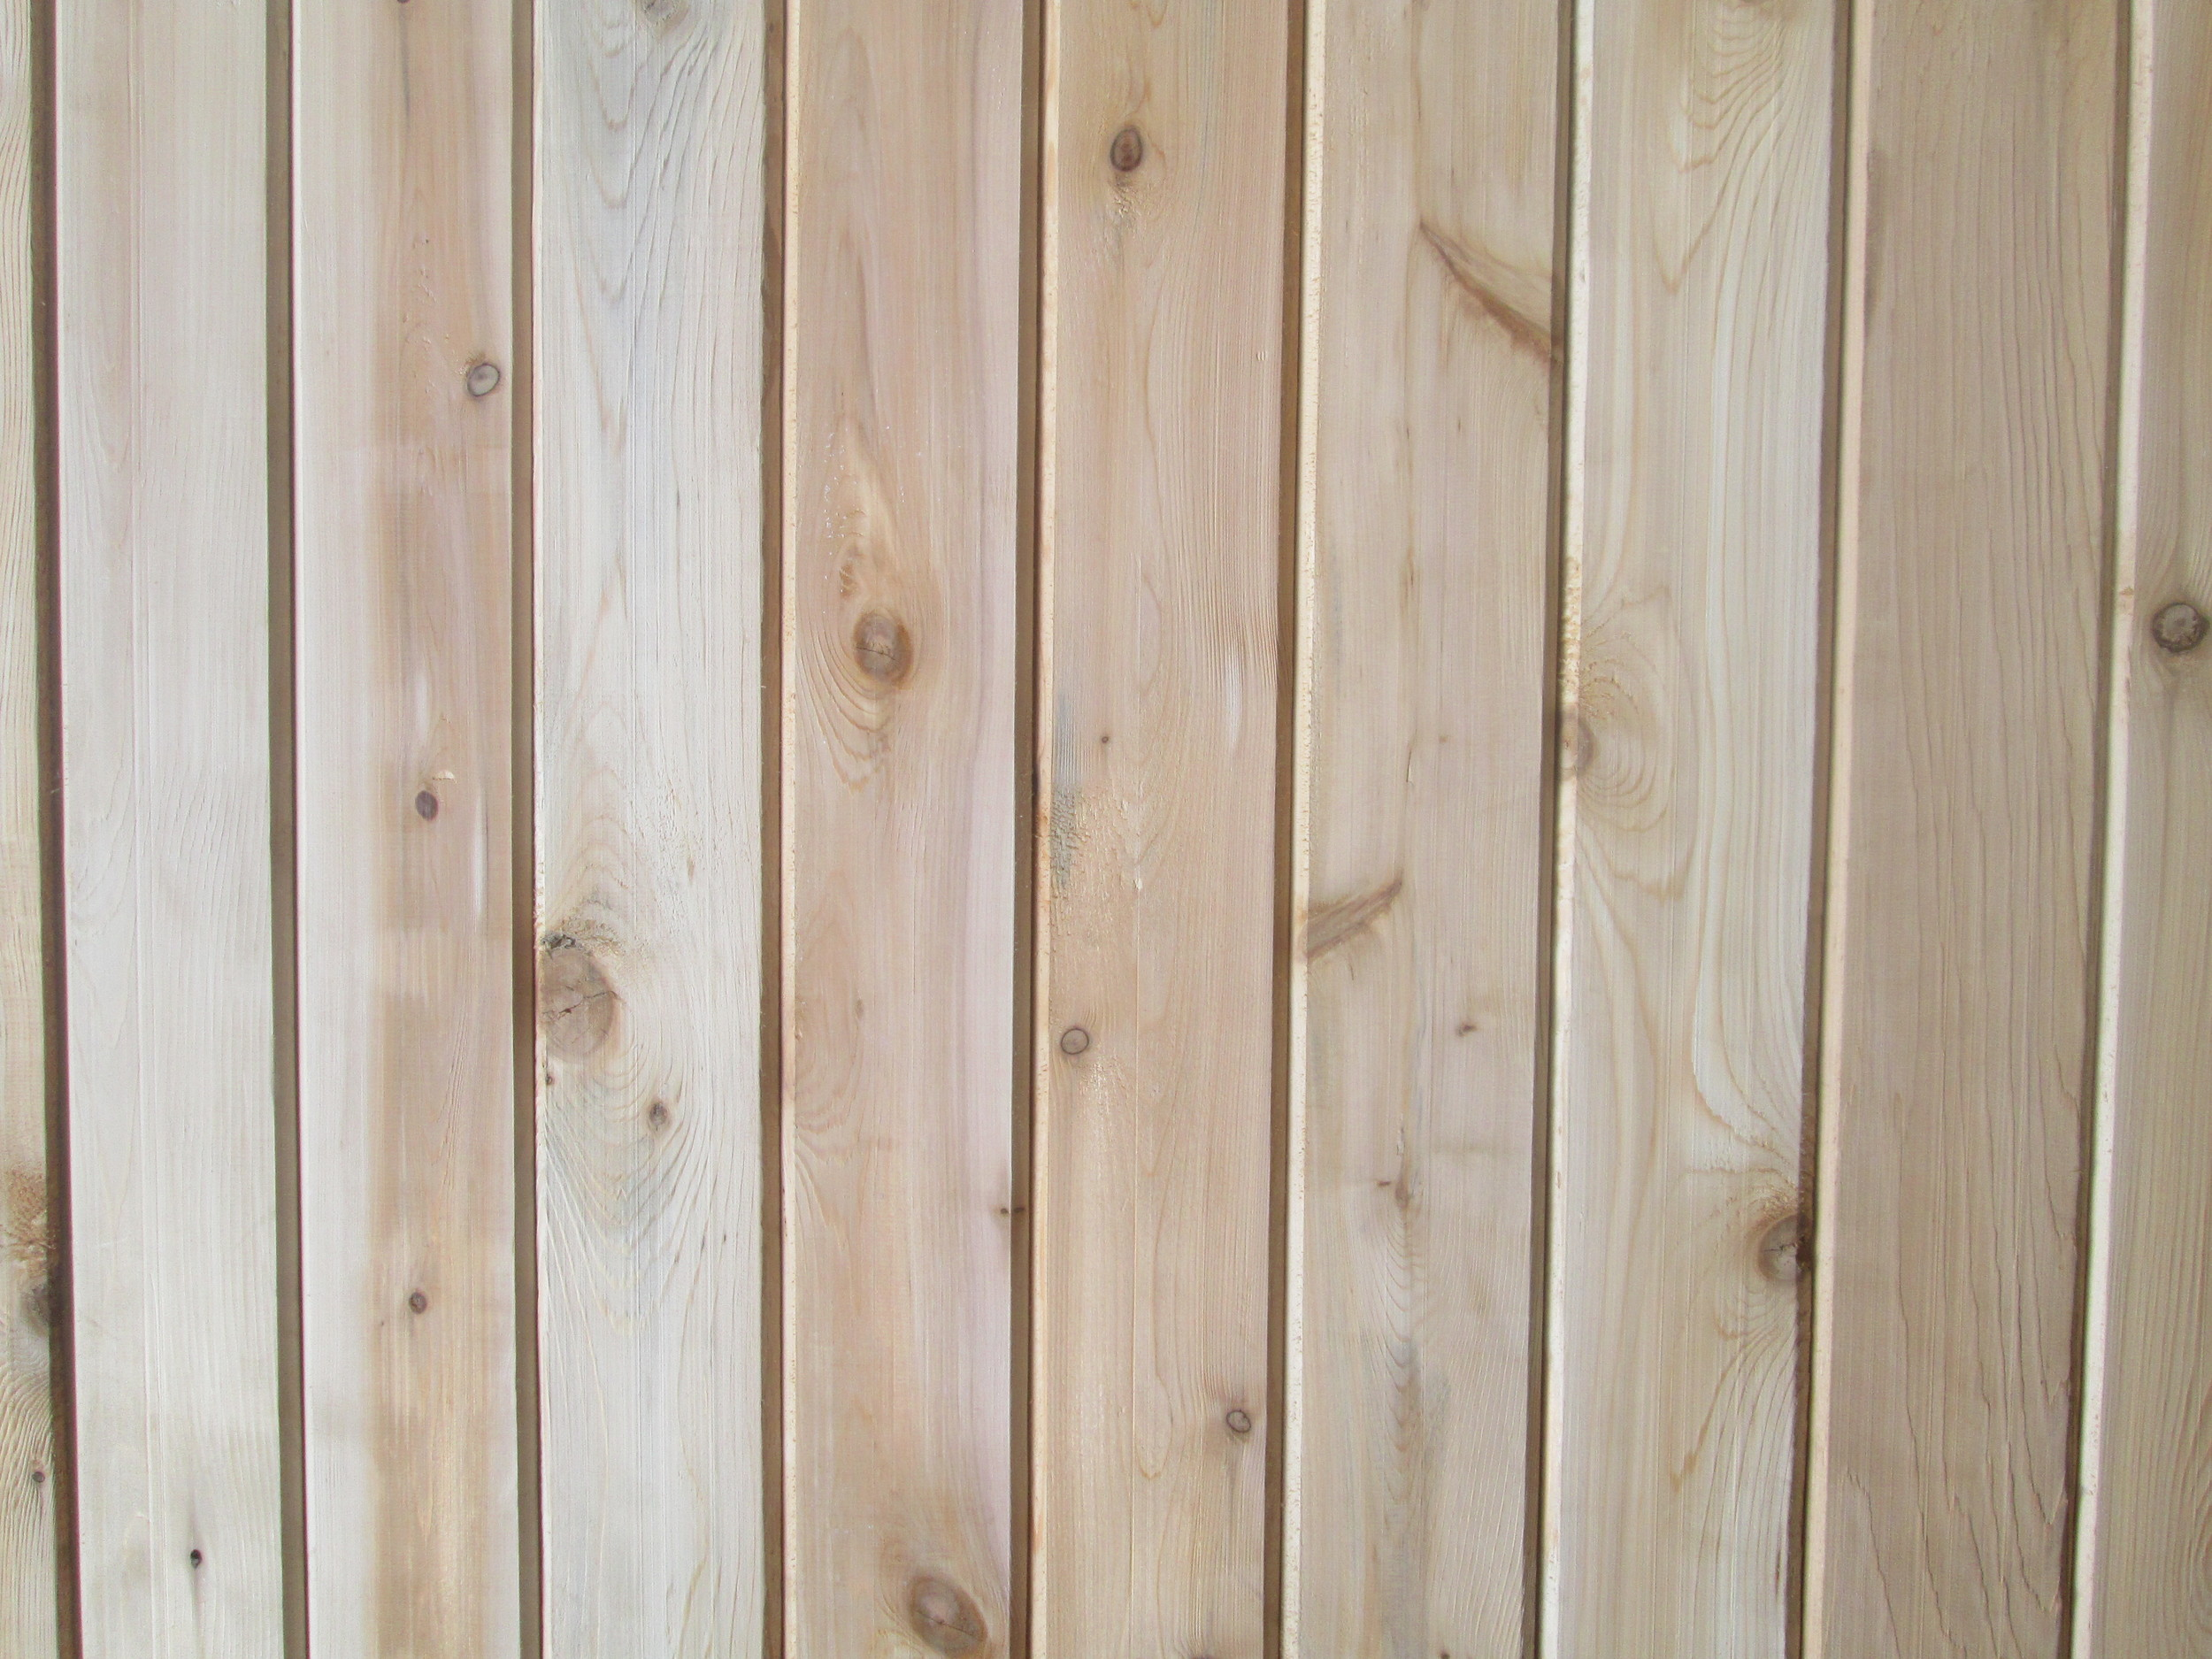 Tongue And Groove Maine Cedar Store,Best Type Of Bed Sheets For Sensitive Skin